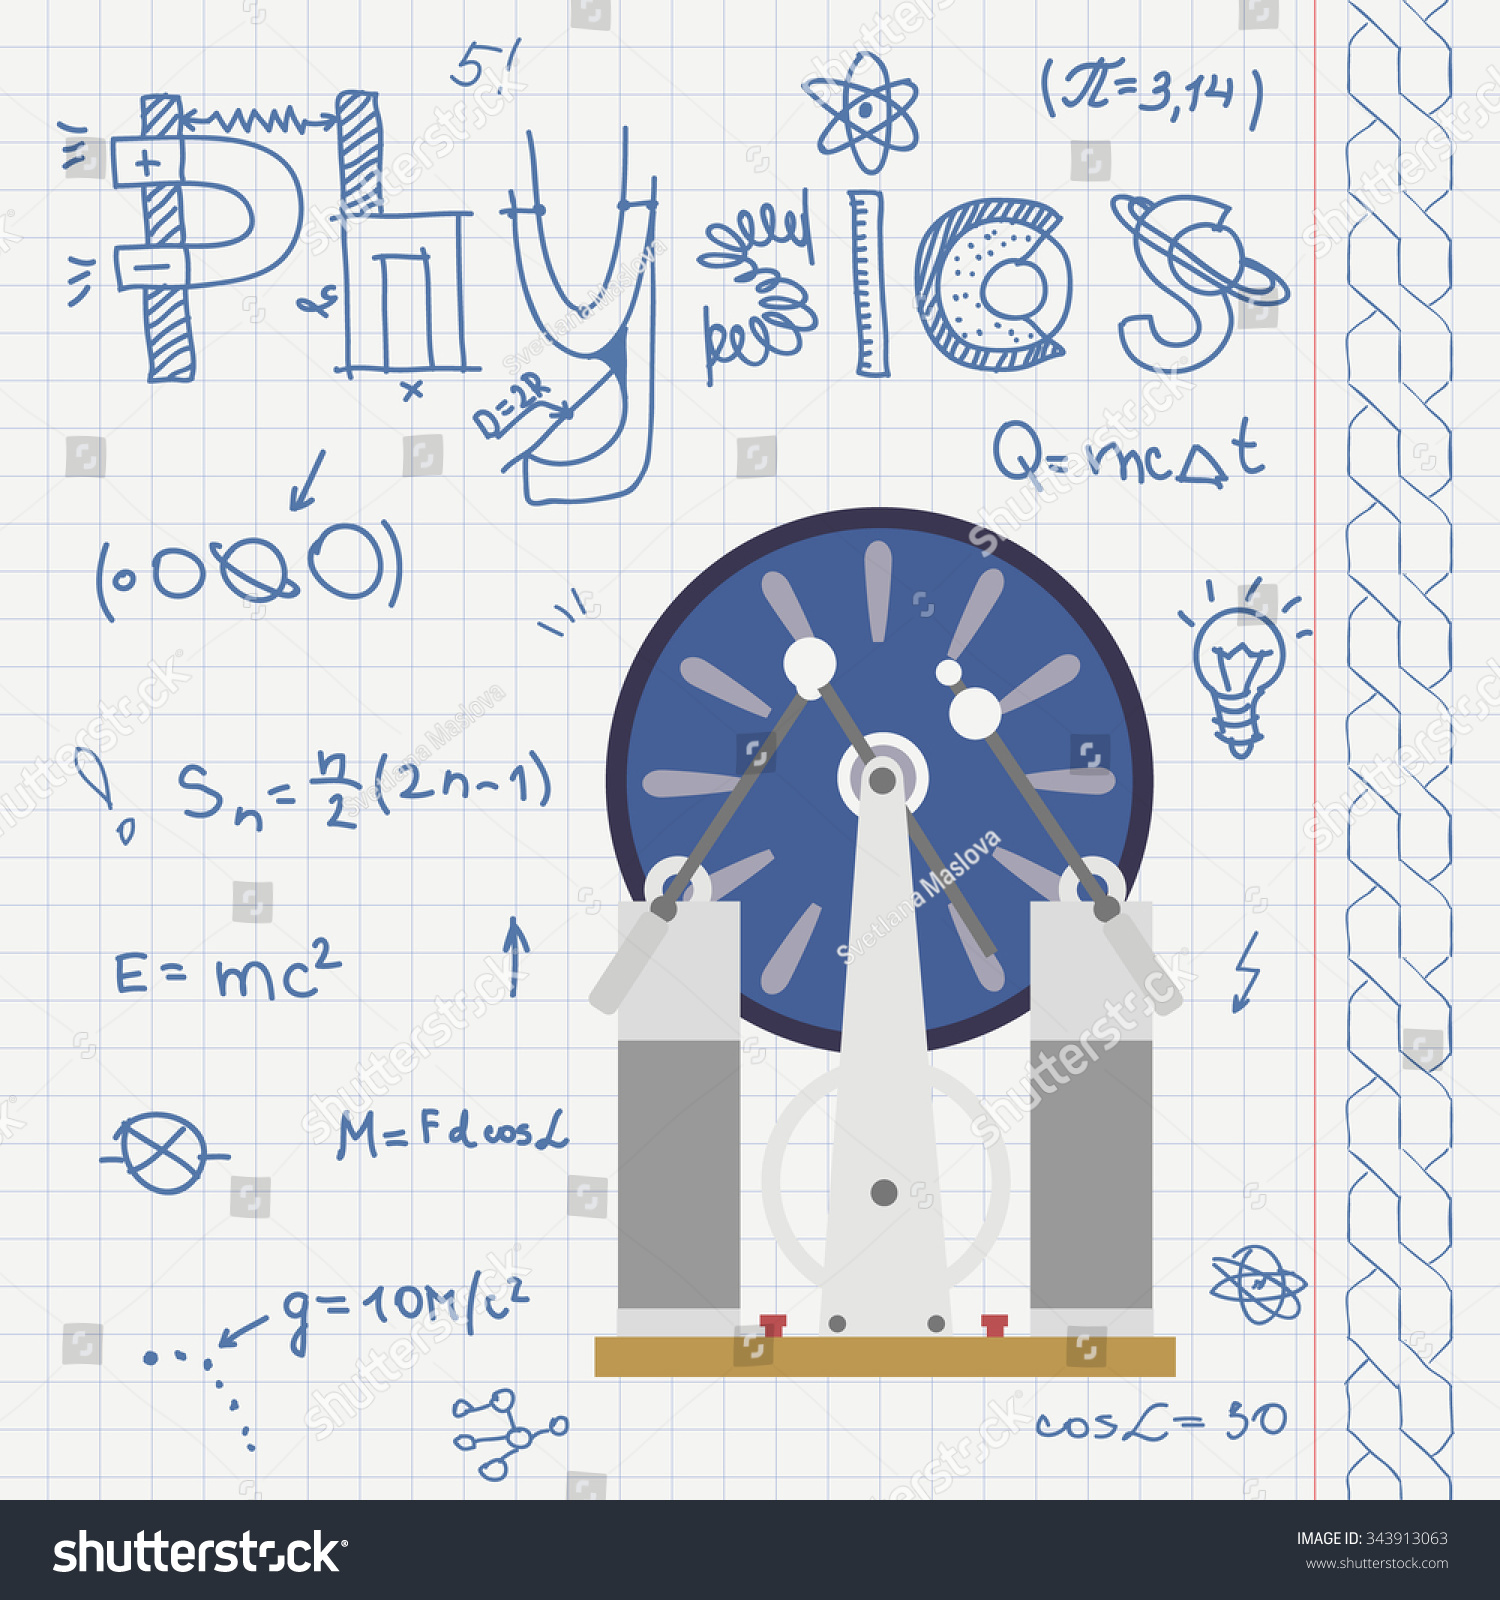 Physics Classroom Vectors Describing Motion With Vector Diagrams Application Of Newton39s Laws In Walking Including A Free Body Diagram Electrostatic Machine Equipment Stock